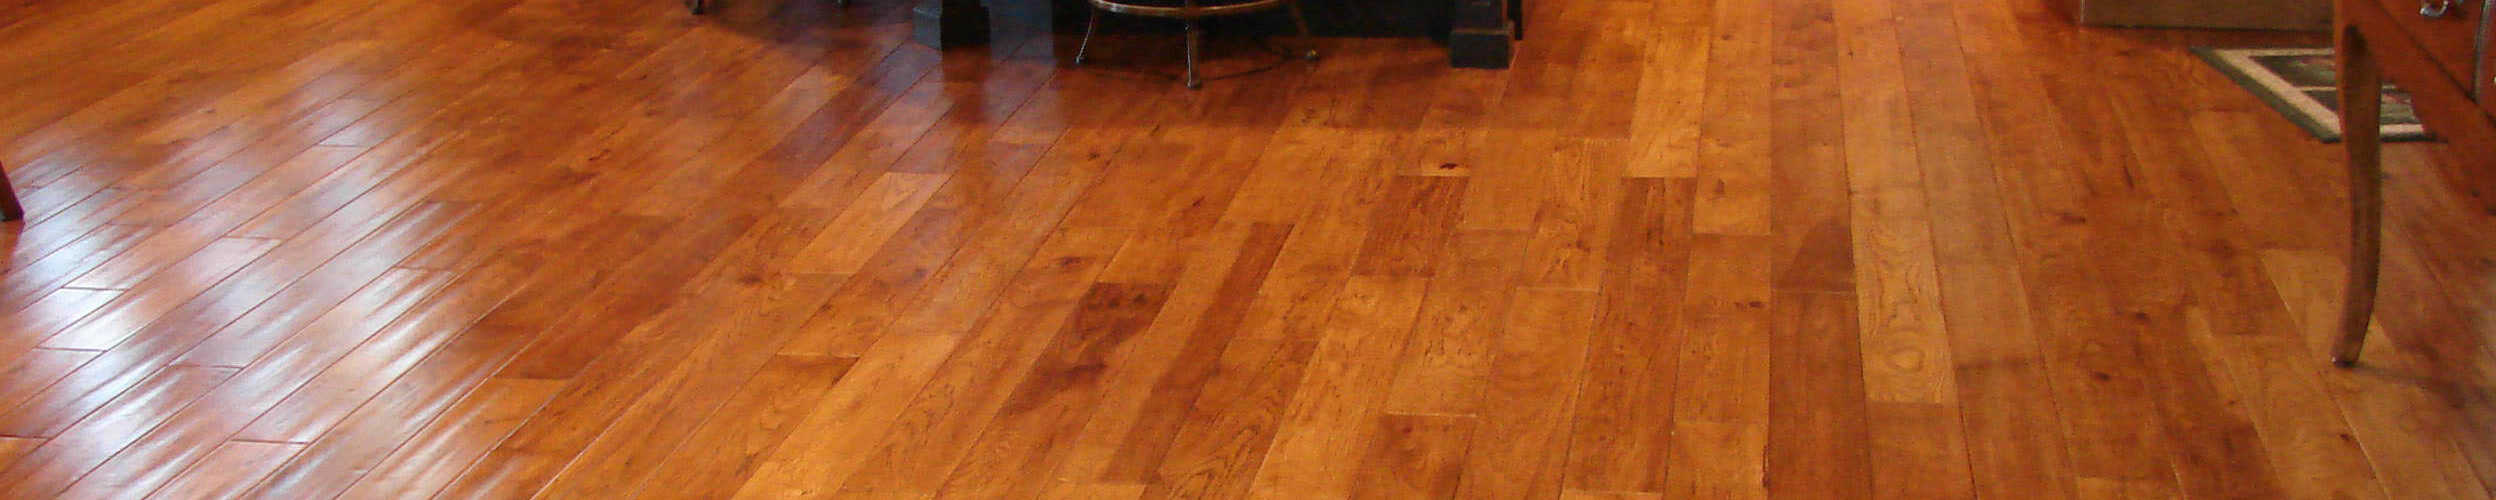 How Much Does It Cost To Install Hardwood Floors The Housing Forum